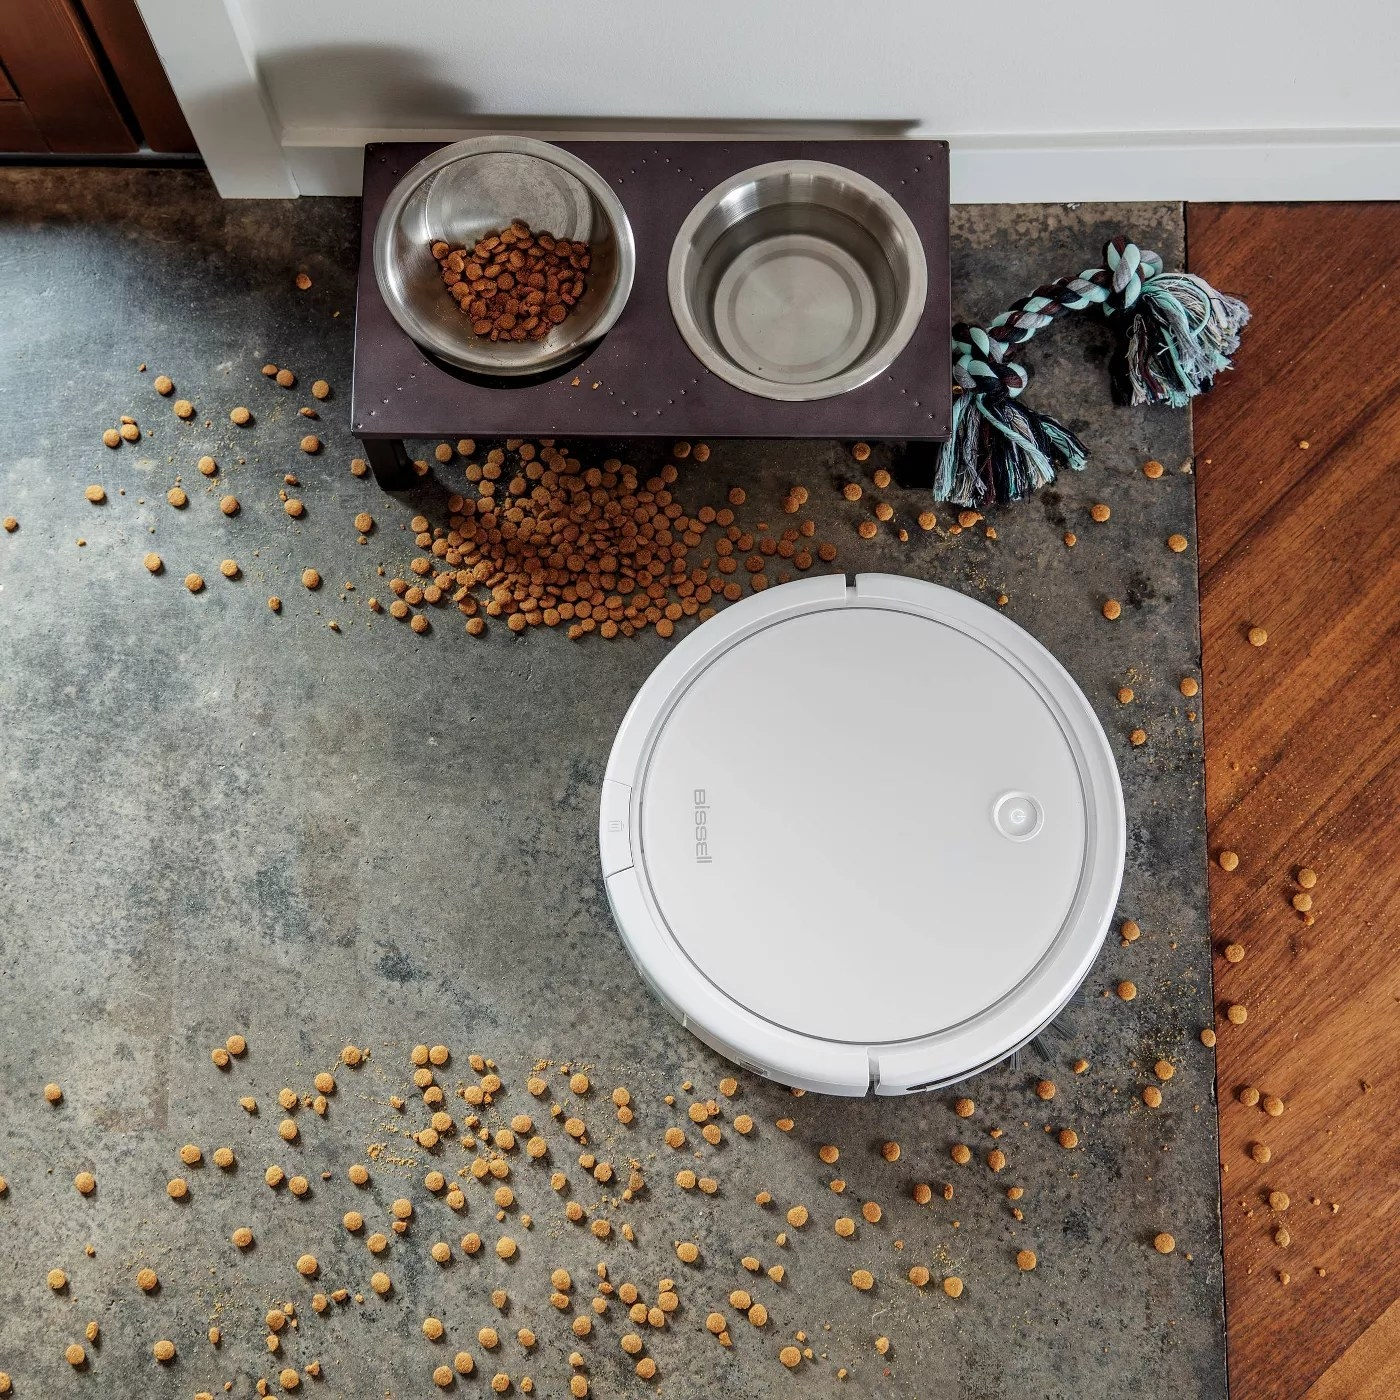 The white BisselL vacuum cleaning up dog food